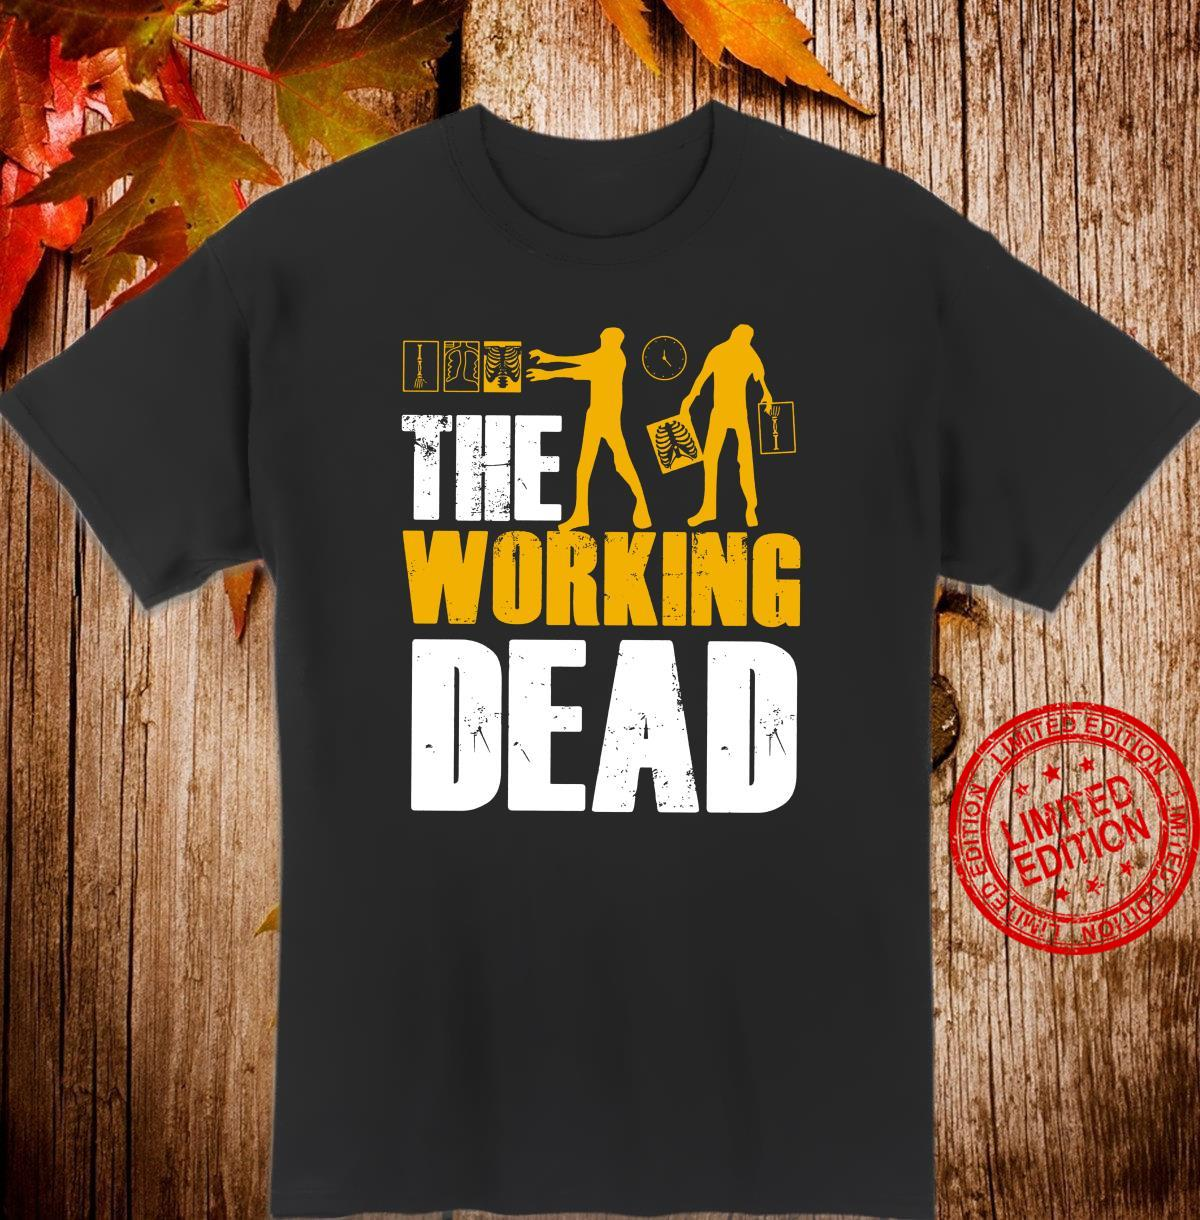 The working dead shirt